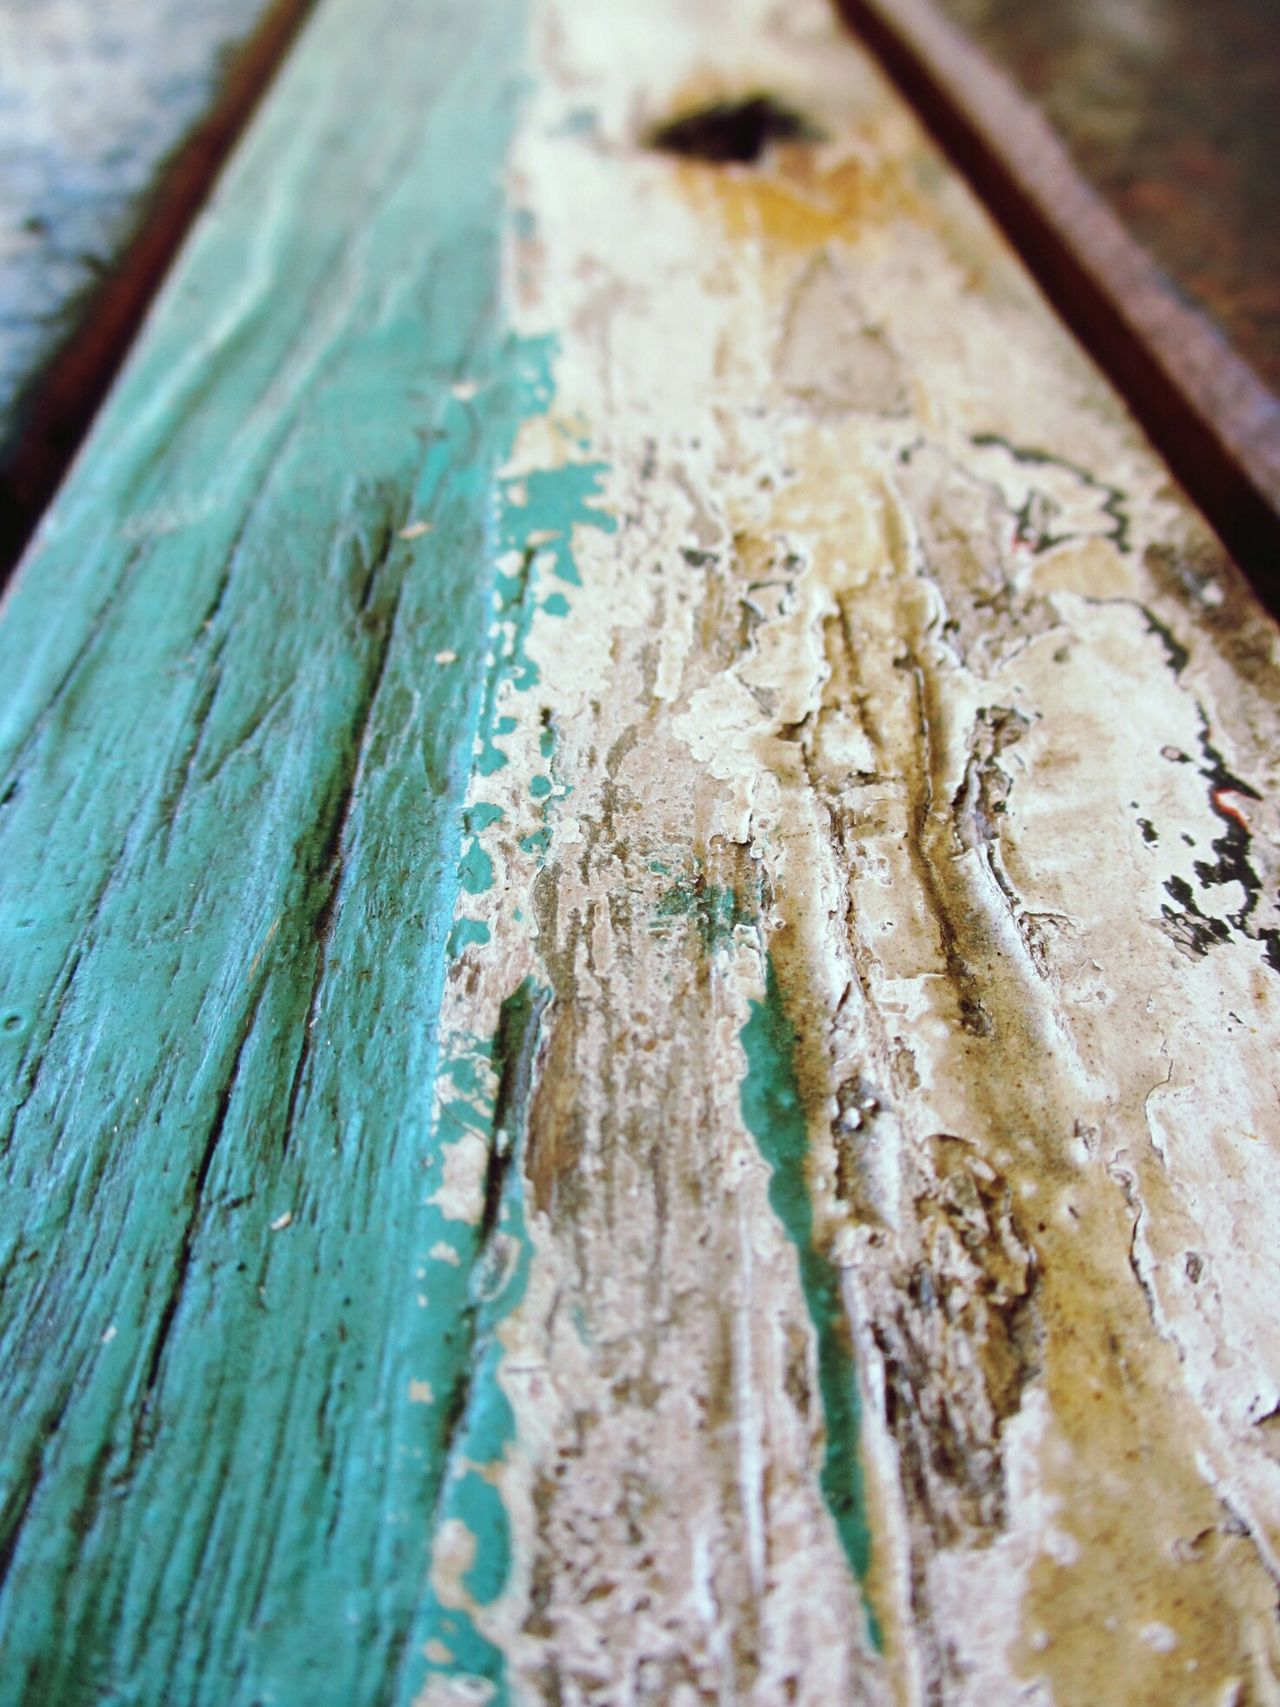 Boat wood Textured  Close-up Wood - Material Boat Wood Weathered Wood Aged Beauty Backgrounds Background Paint Decay Weathered Full Frame Textures And Surfaces